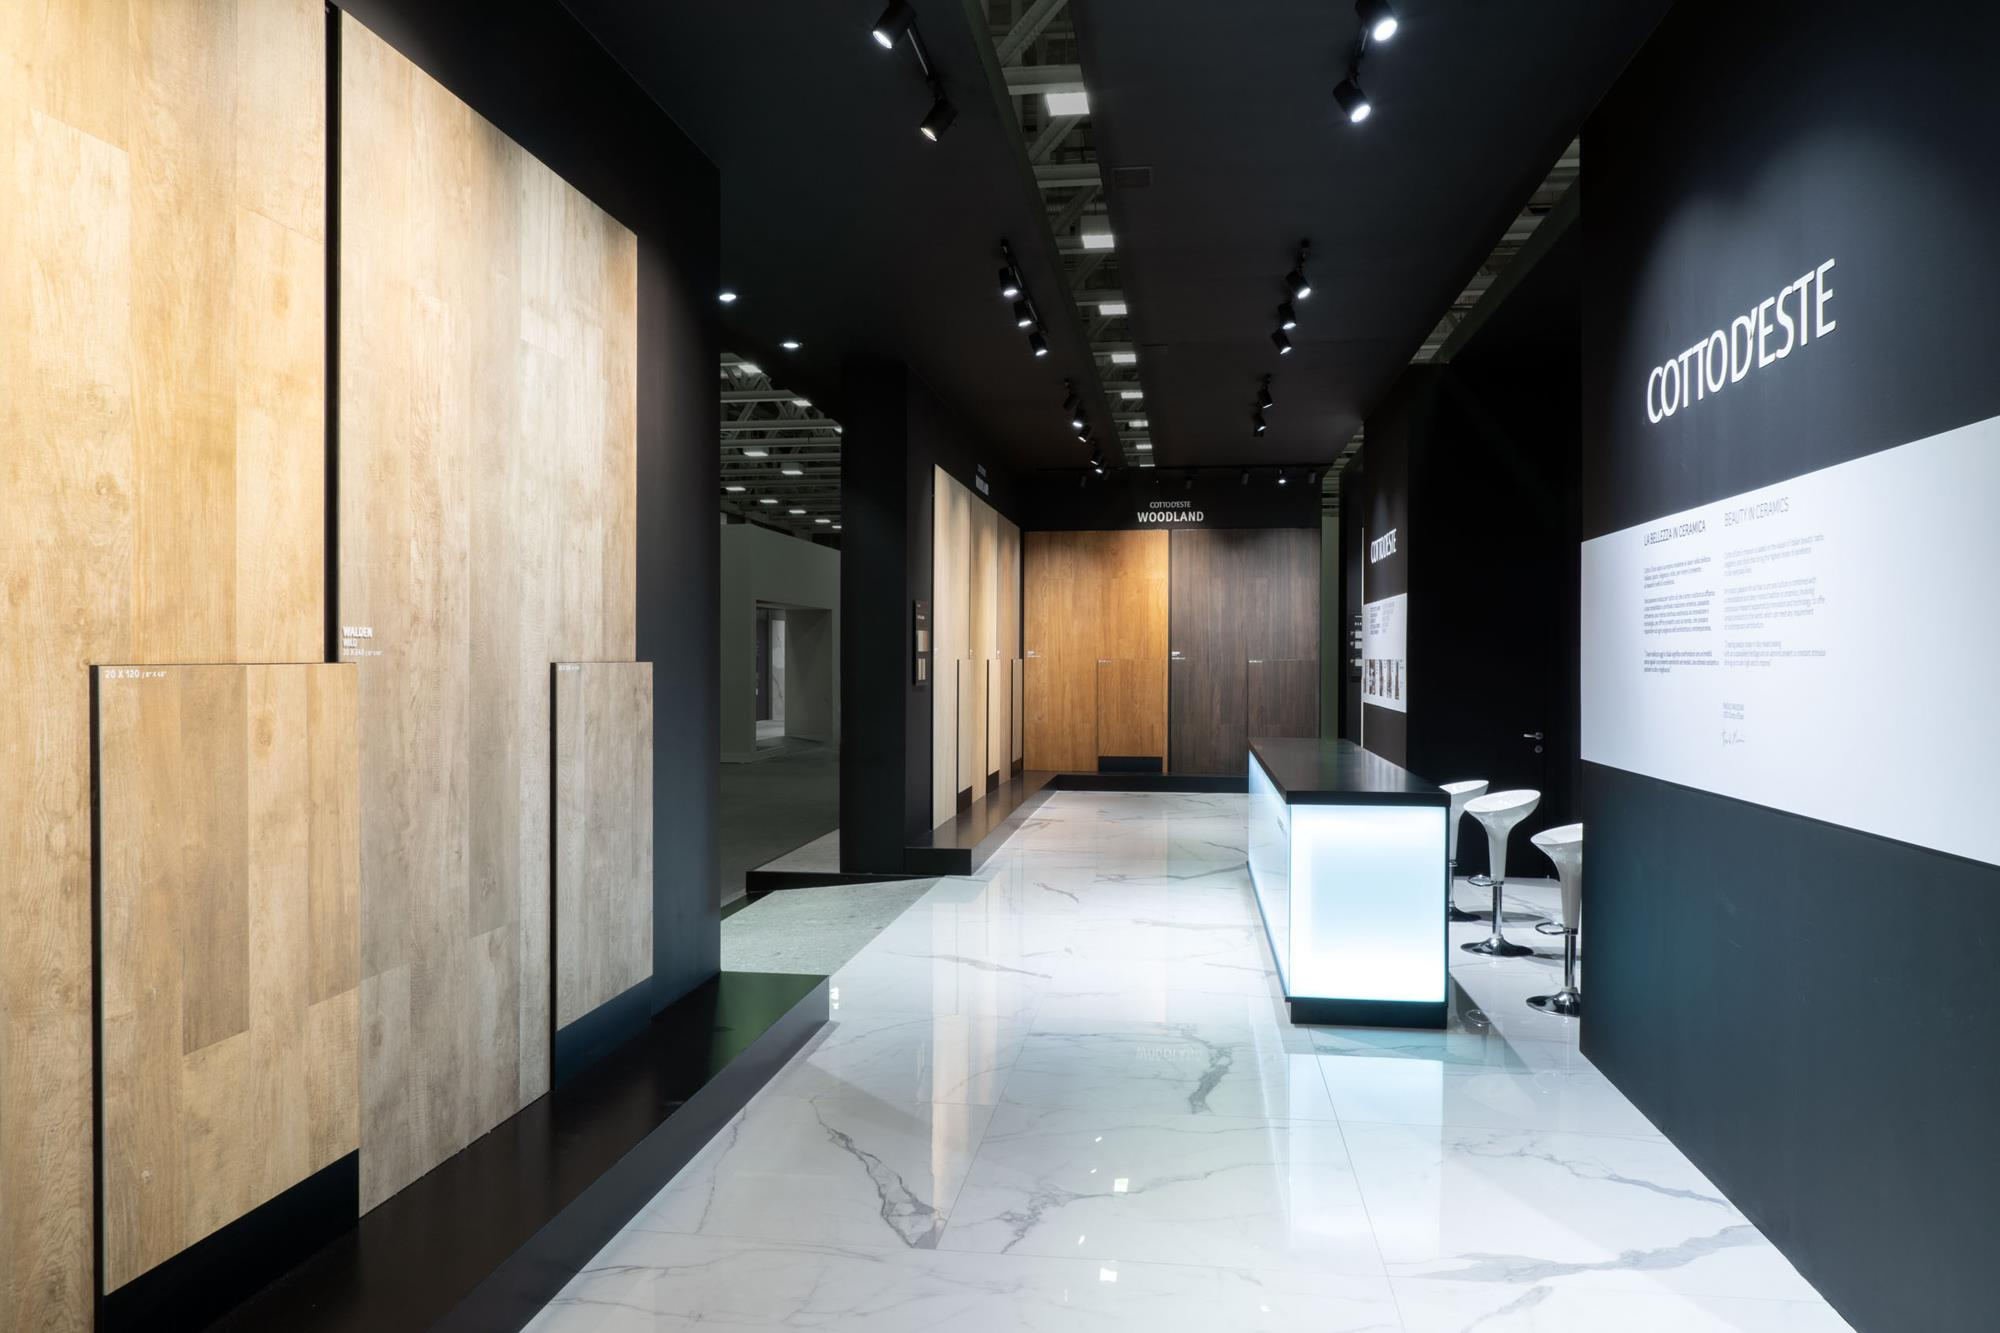 Cersaie 2018, Cotto d'Este takes ceramics to a new level: Photo 5